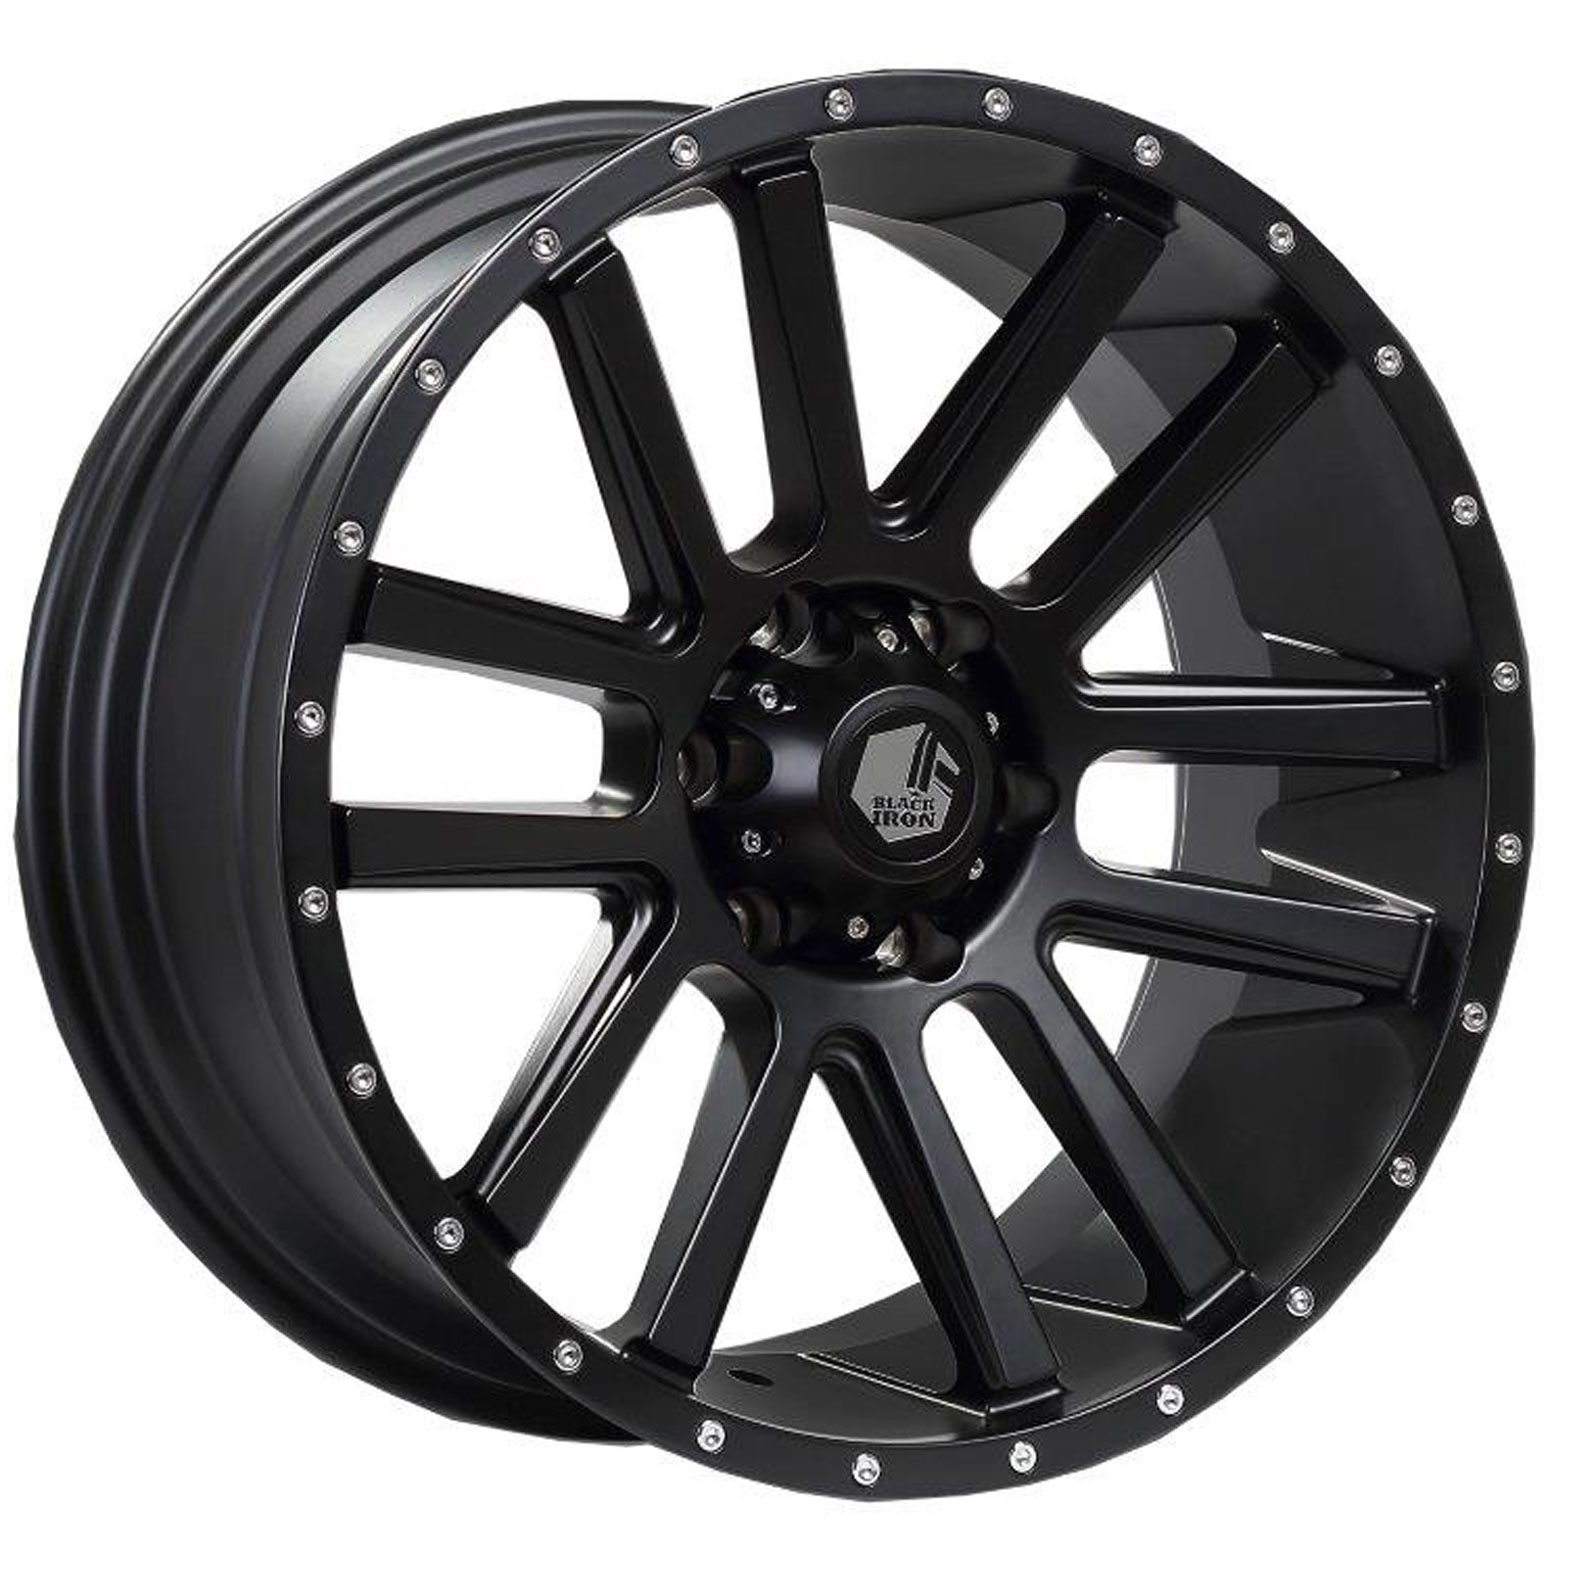 Black Iron Spur Black Satin Wheel